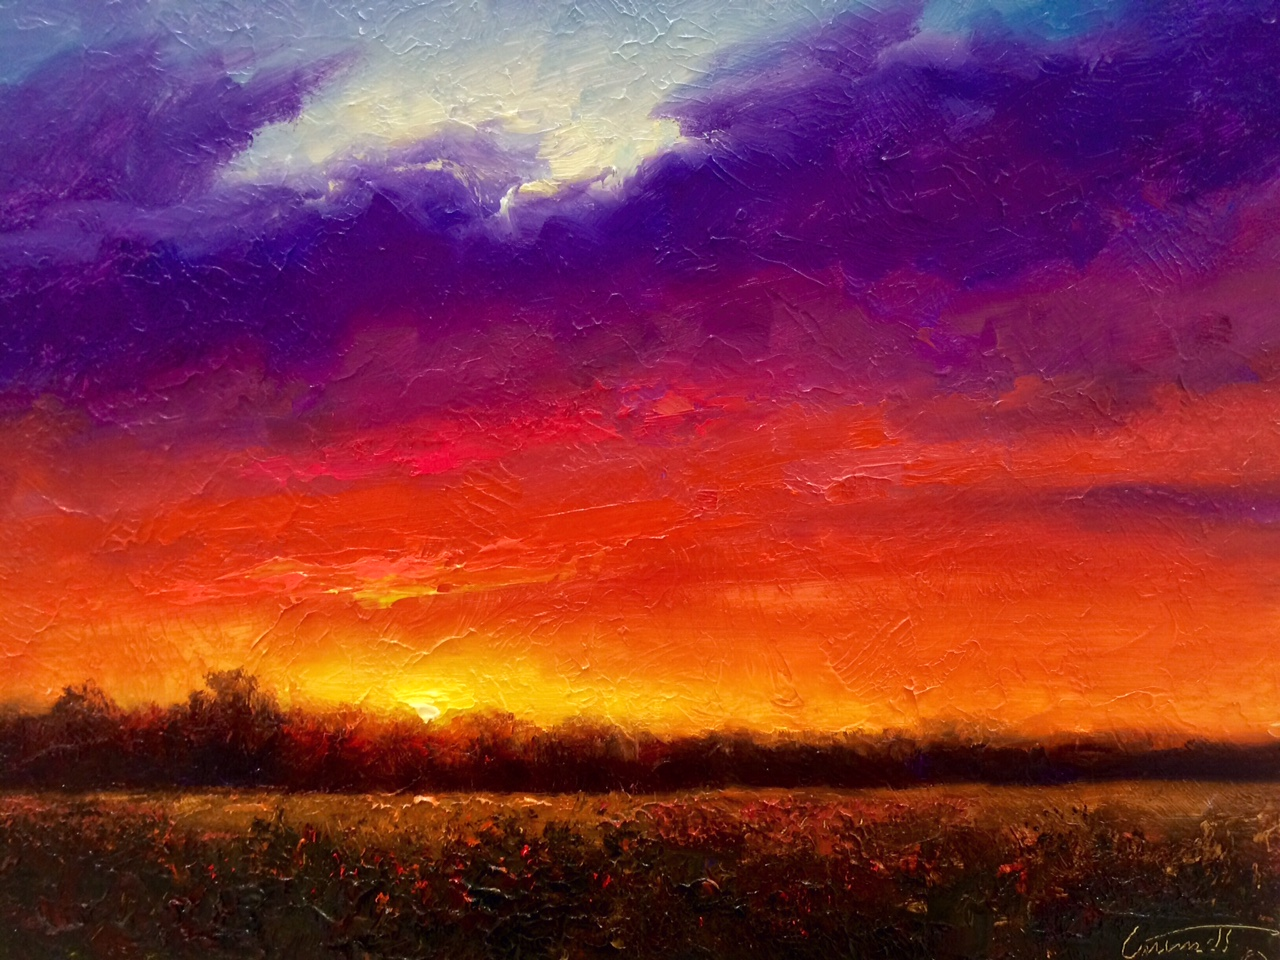 Sky Fire Evening Sunset Painting